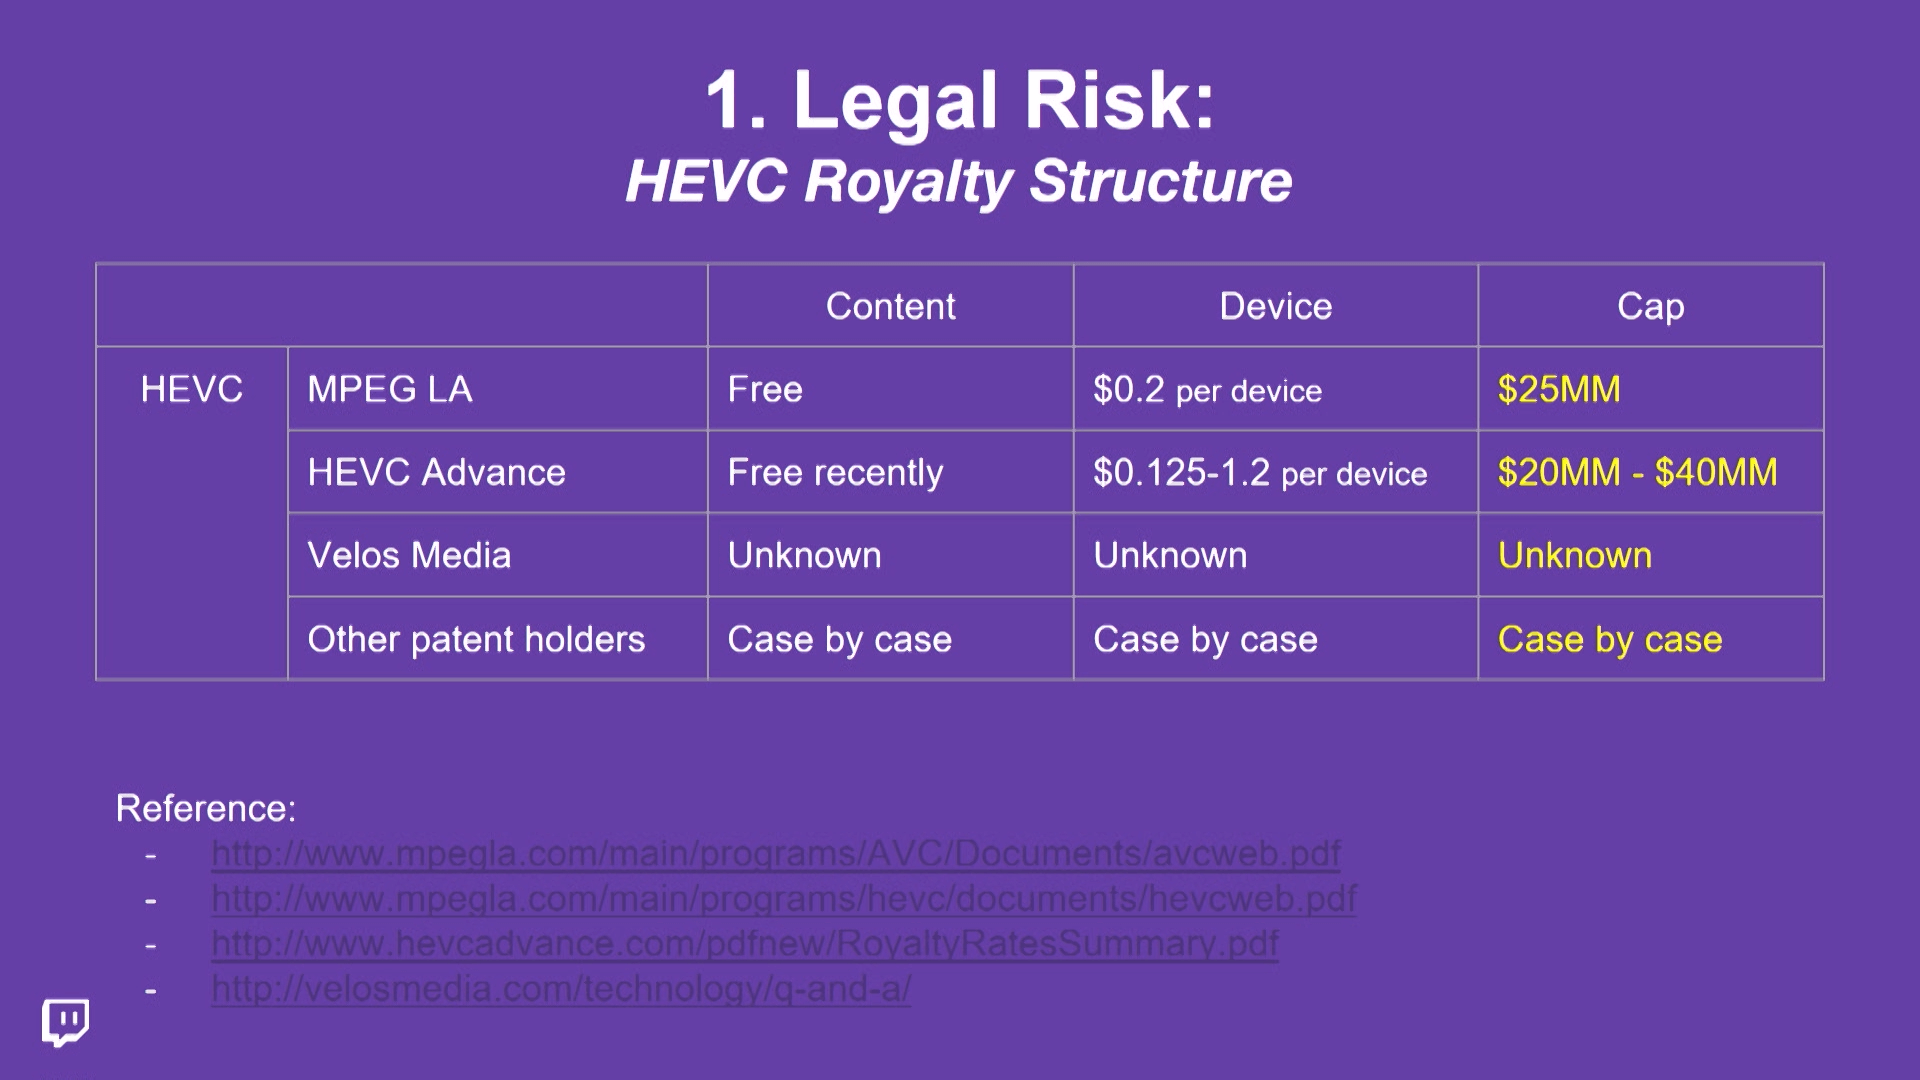 HEVC royalty structure